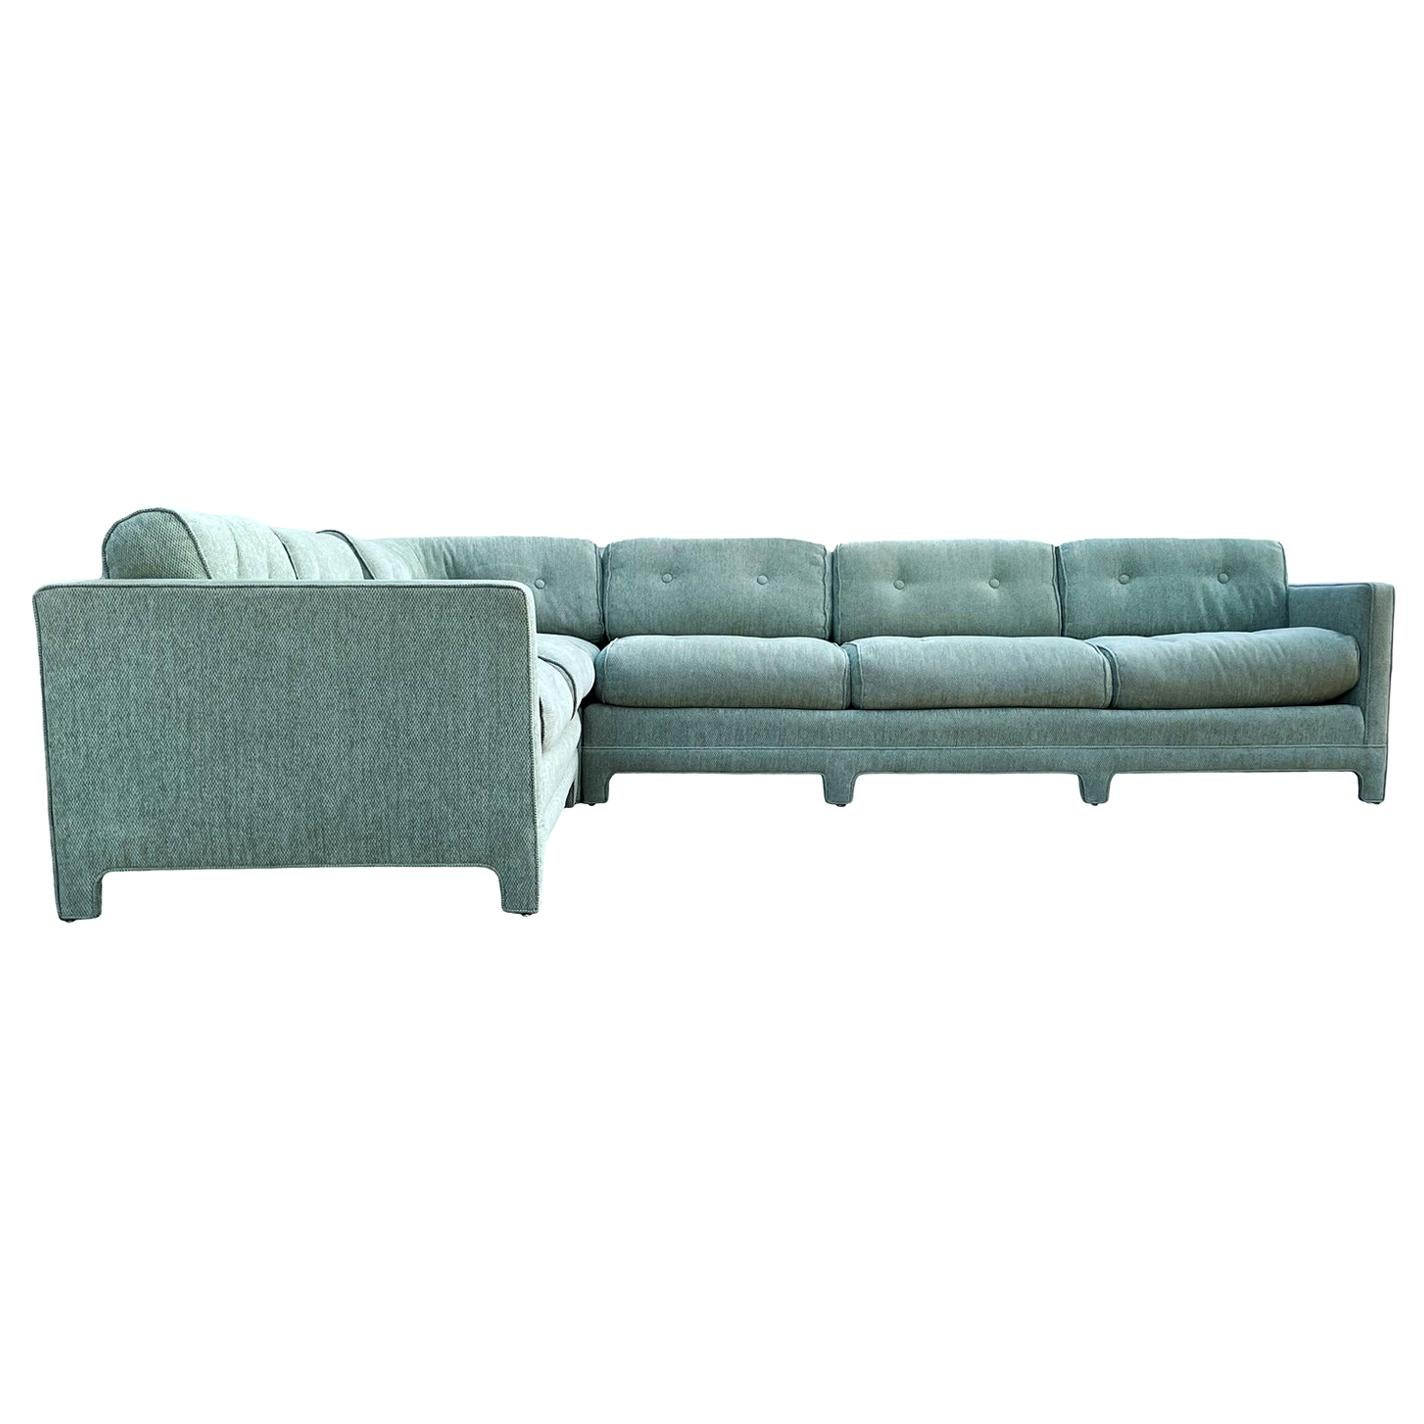 Mid-Century Modern Parsons Style Sectional Sofa after Milo Baughman